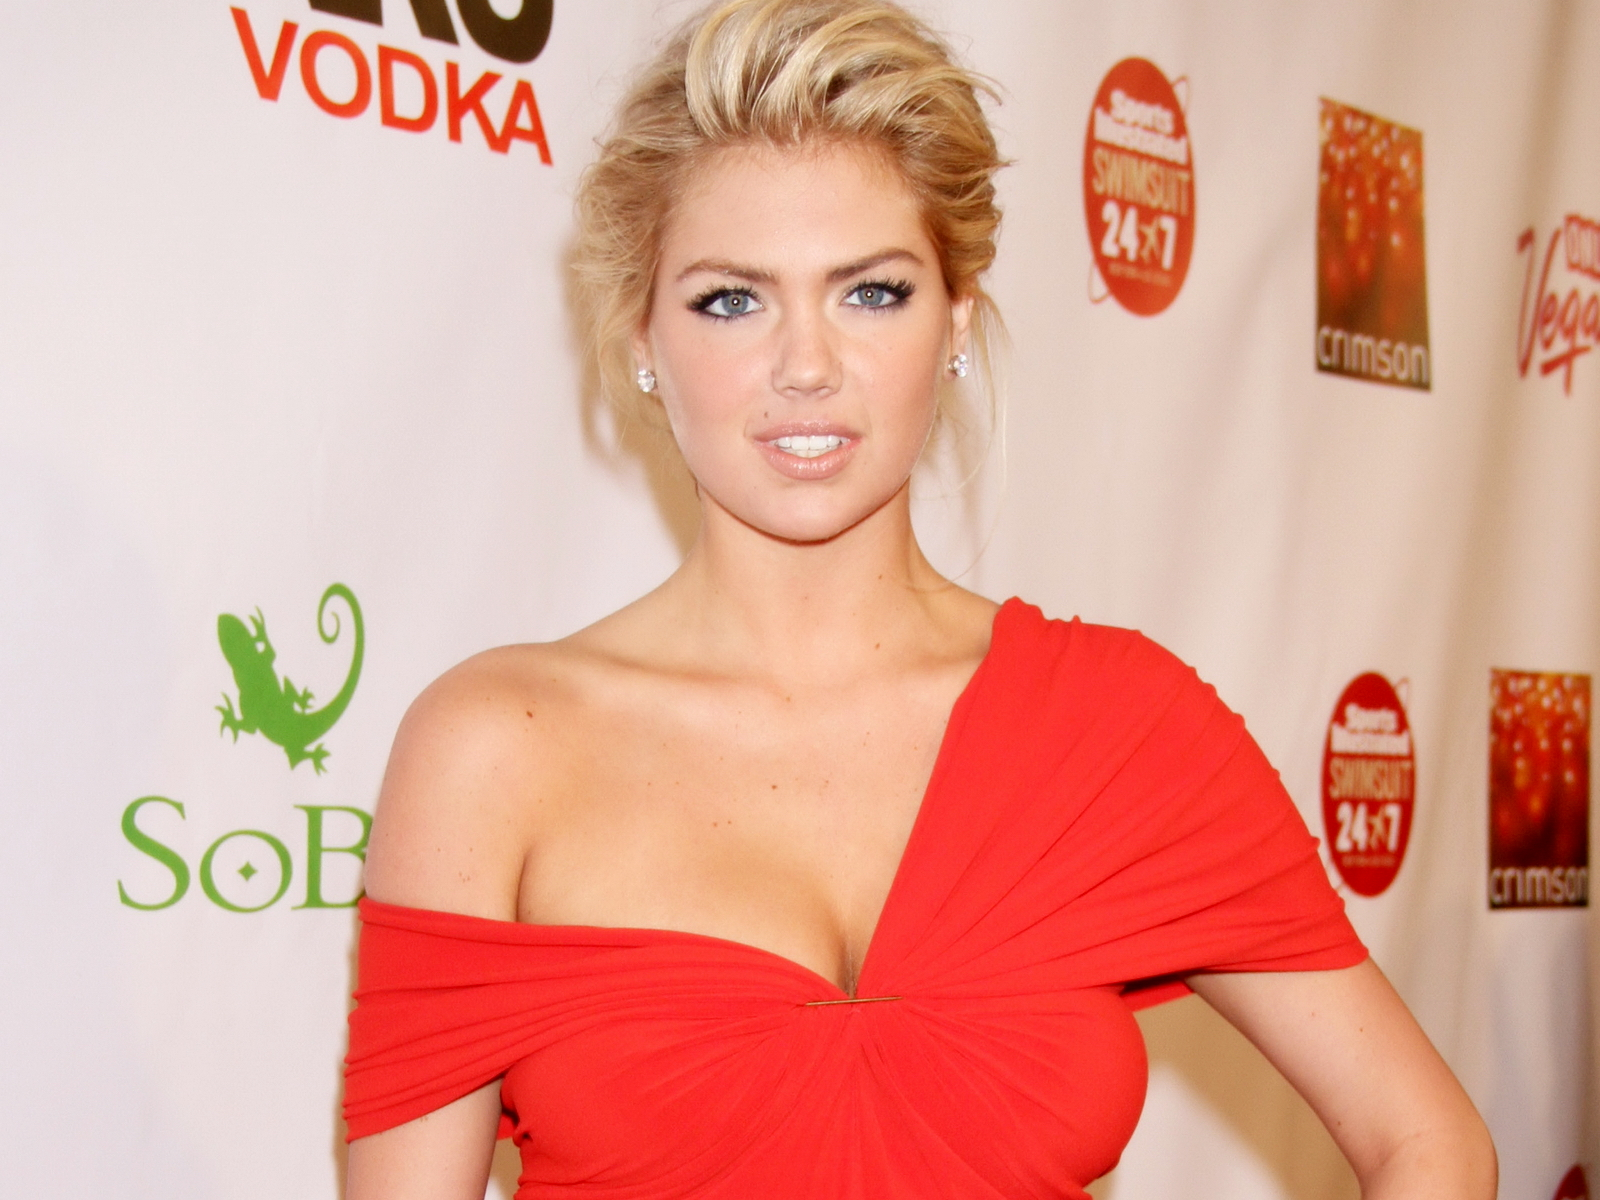 Kate Upton: Passion For Luxury : Kate Upton Named Model Of The Year 2013